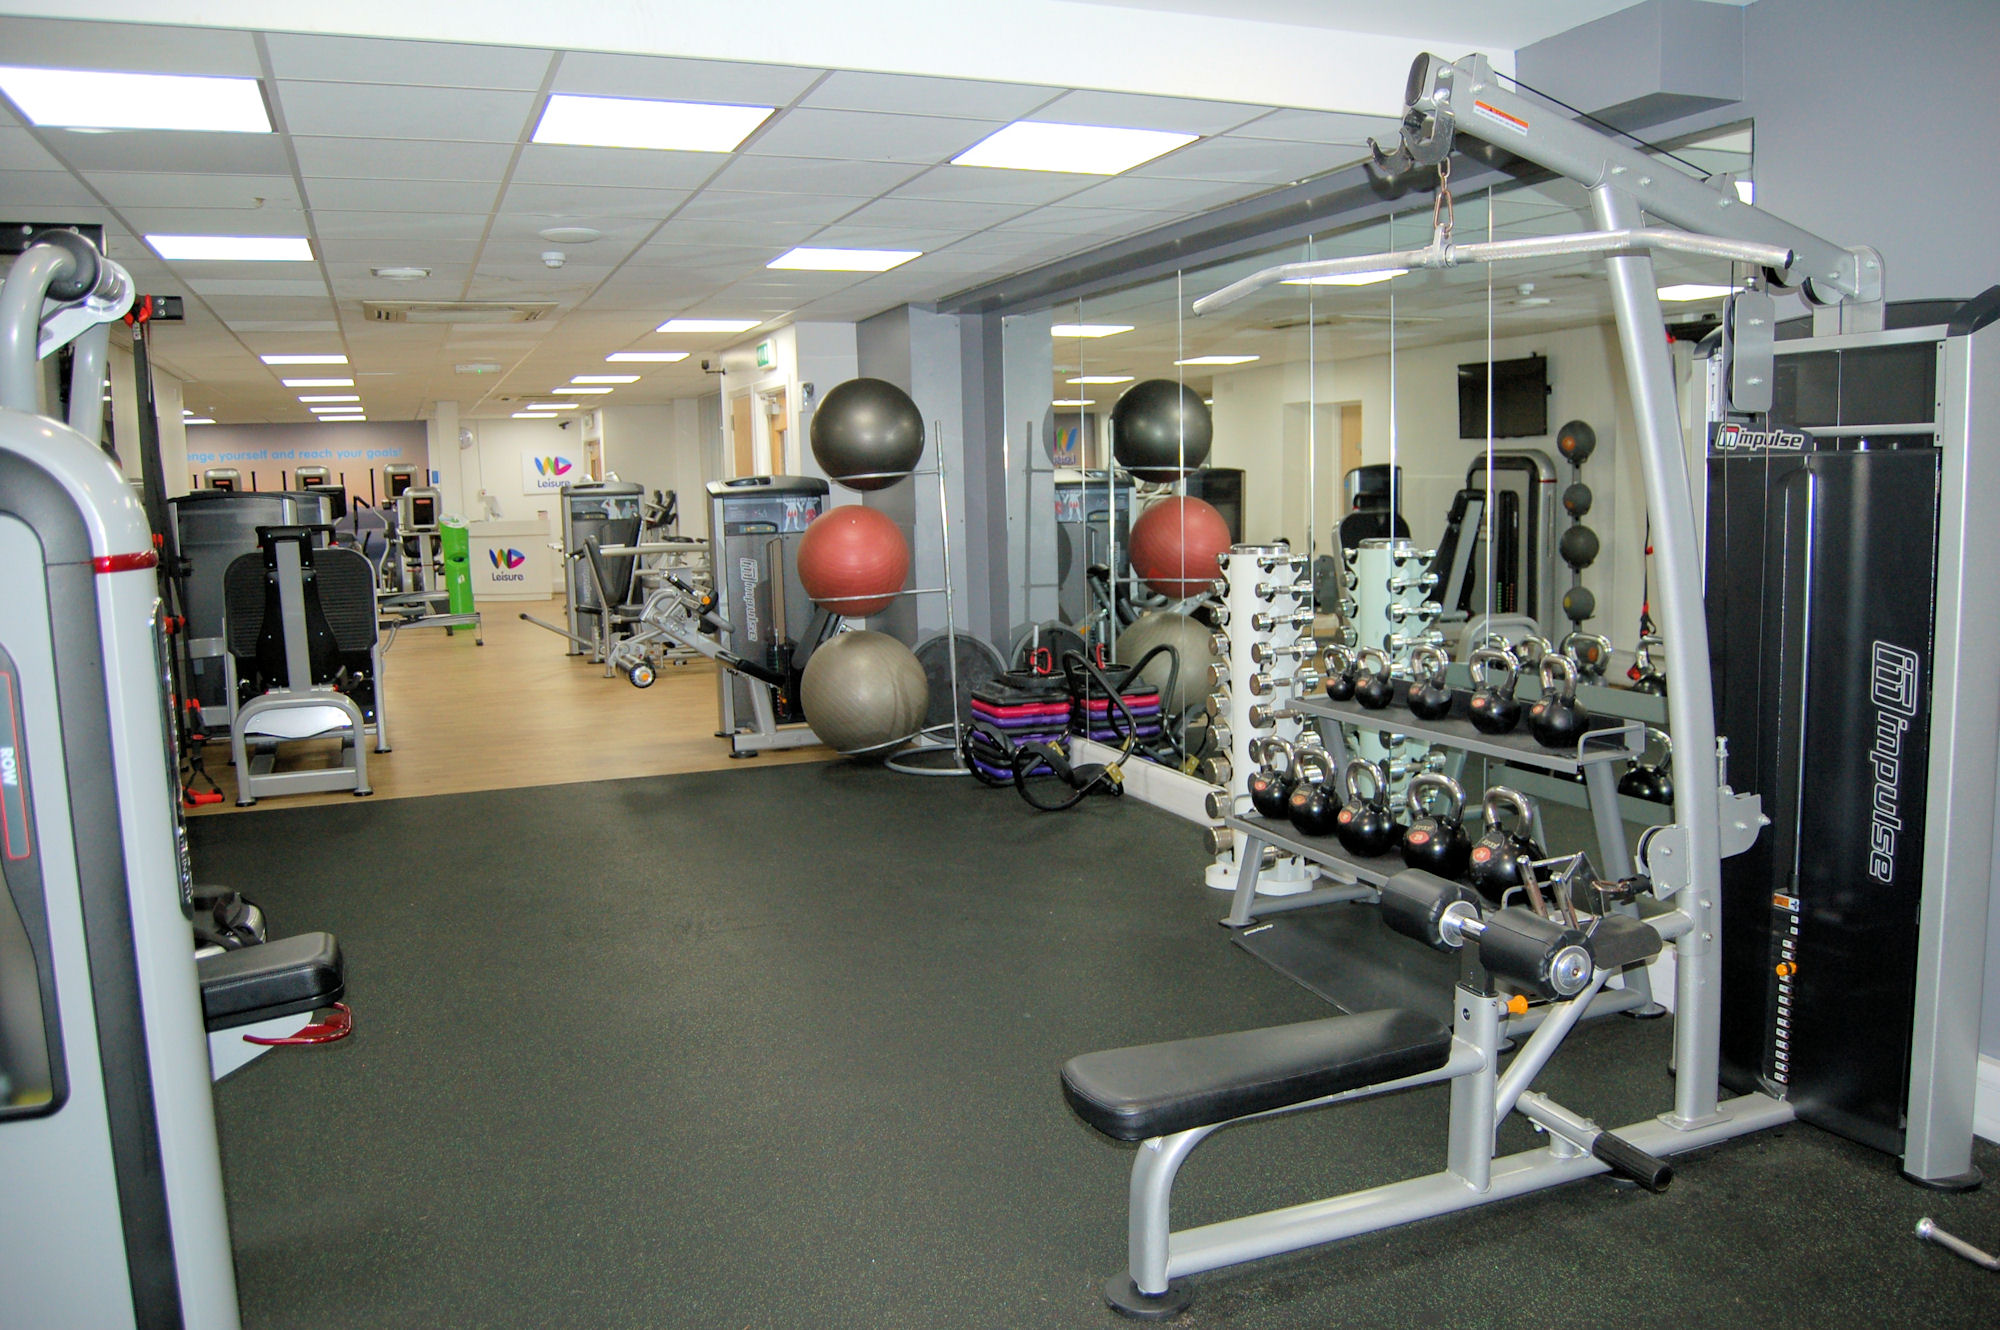 image of Gym area with medicine balls